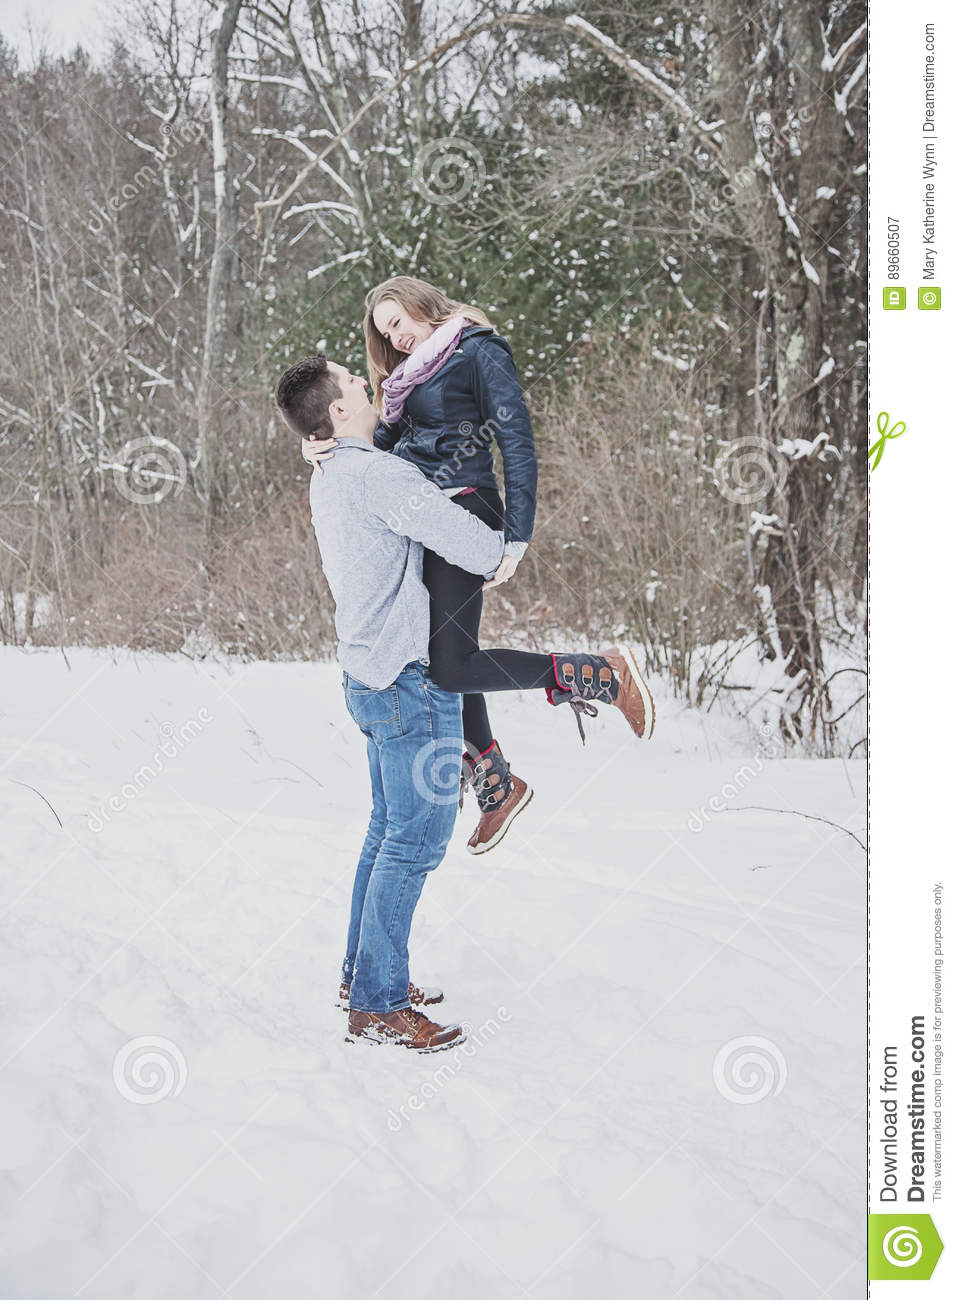 Playful young couple outdoors in winter